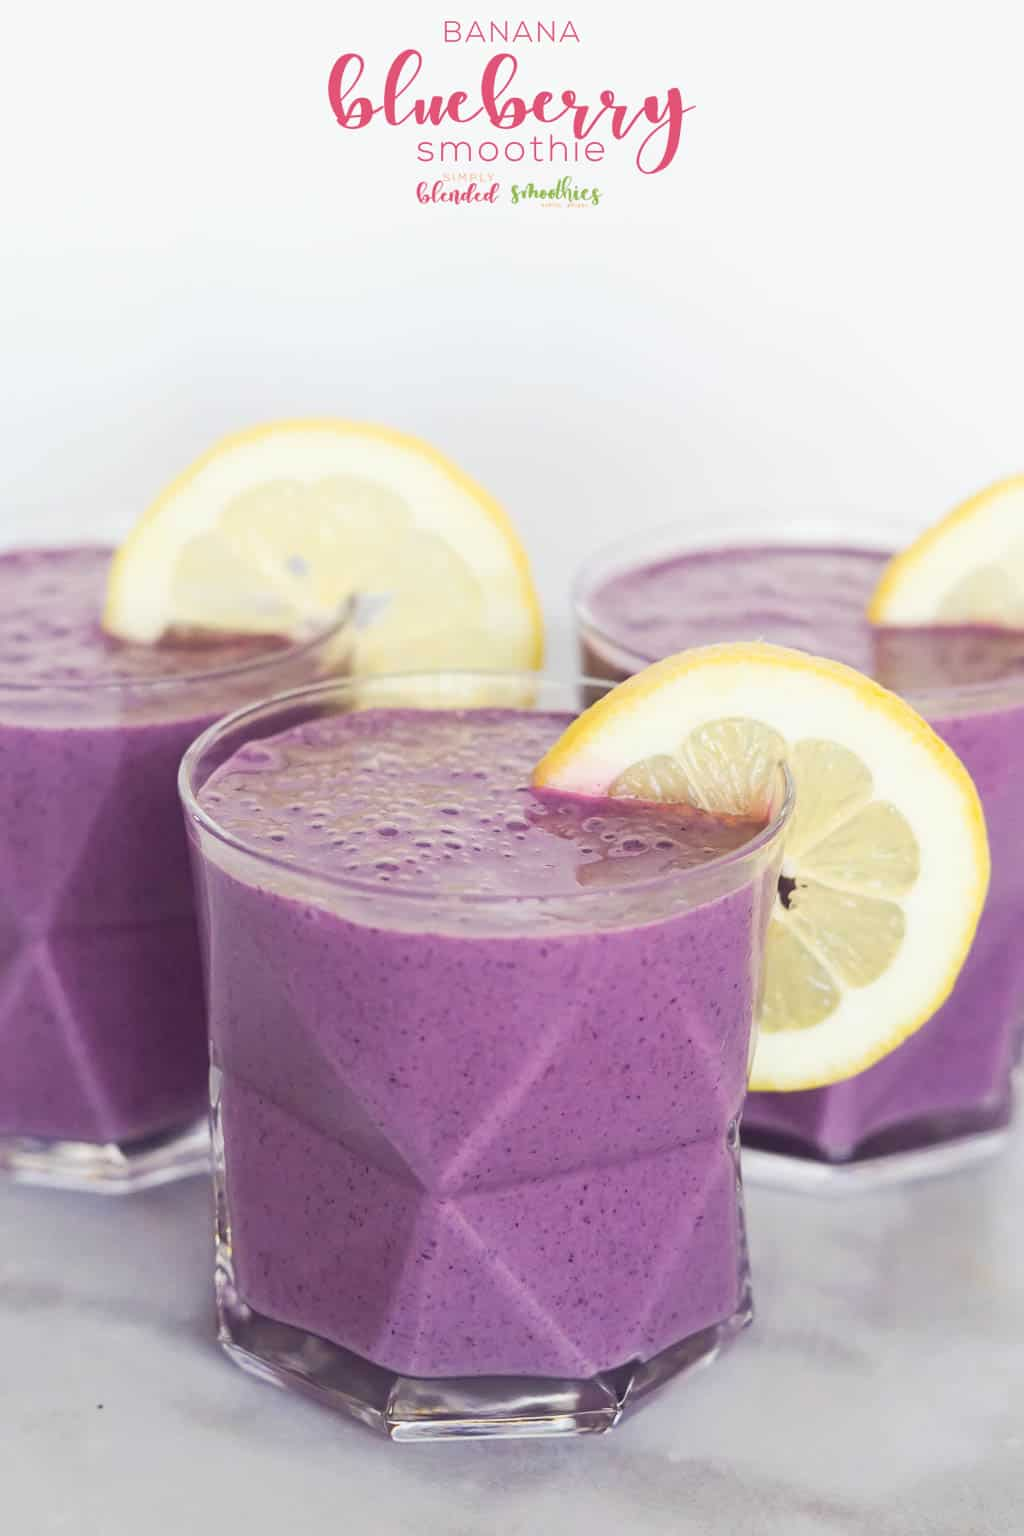 Blueberry Banana Smoothie - An Easy And Delicious Blueberry Smoothie Recipe